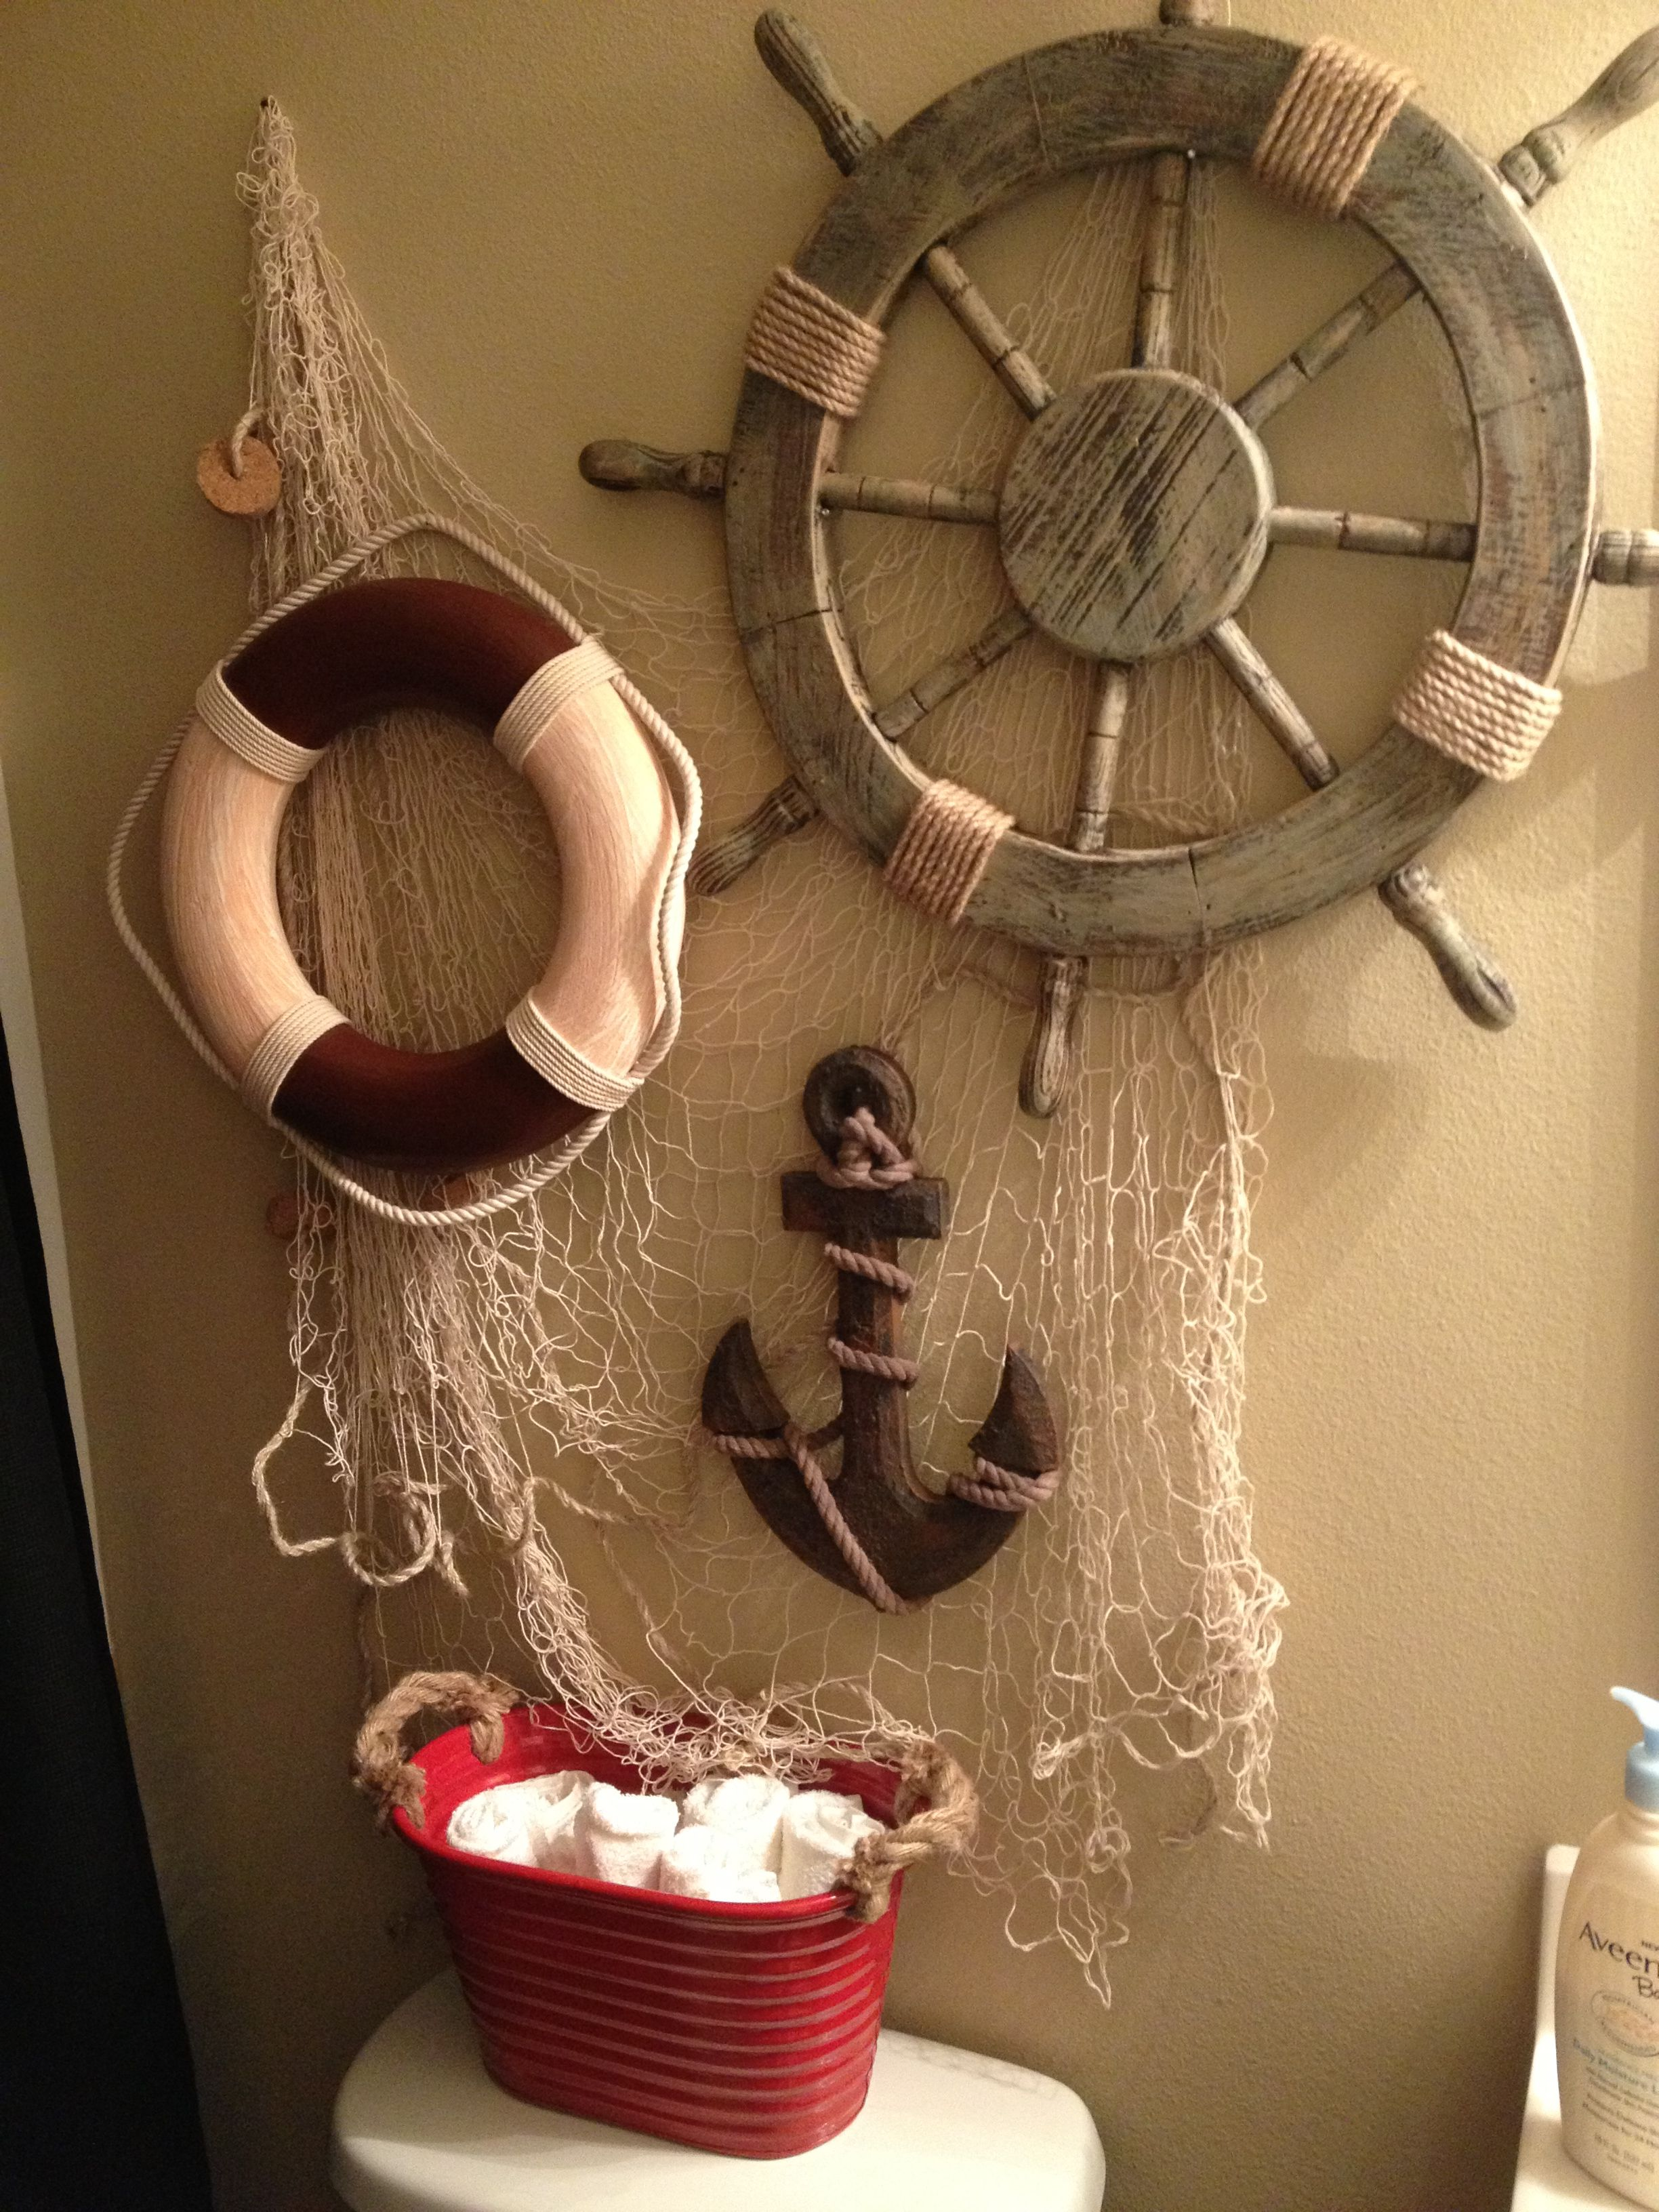 21 cool home ideas that think outside the box new house bathroom rh pinterest com Pirate Bathroom Ideas Pirate-Themed Bathroom Accessories